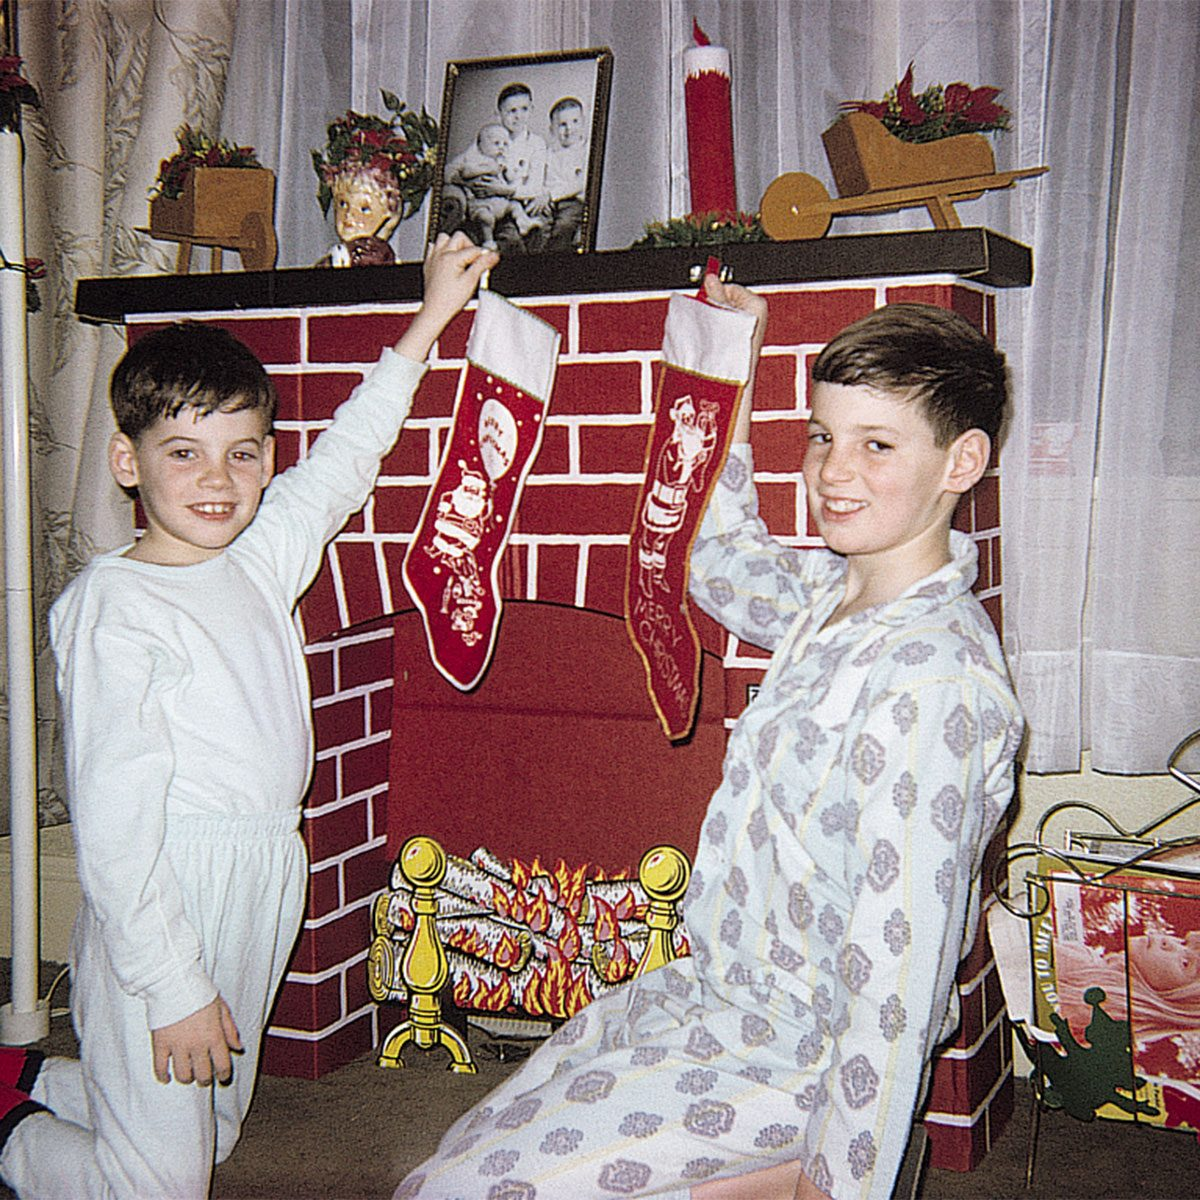 Boys holding stockings over fireplace